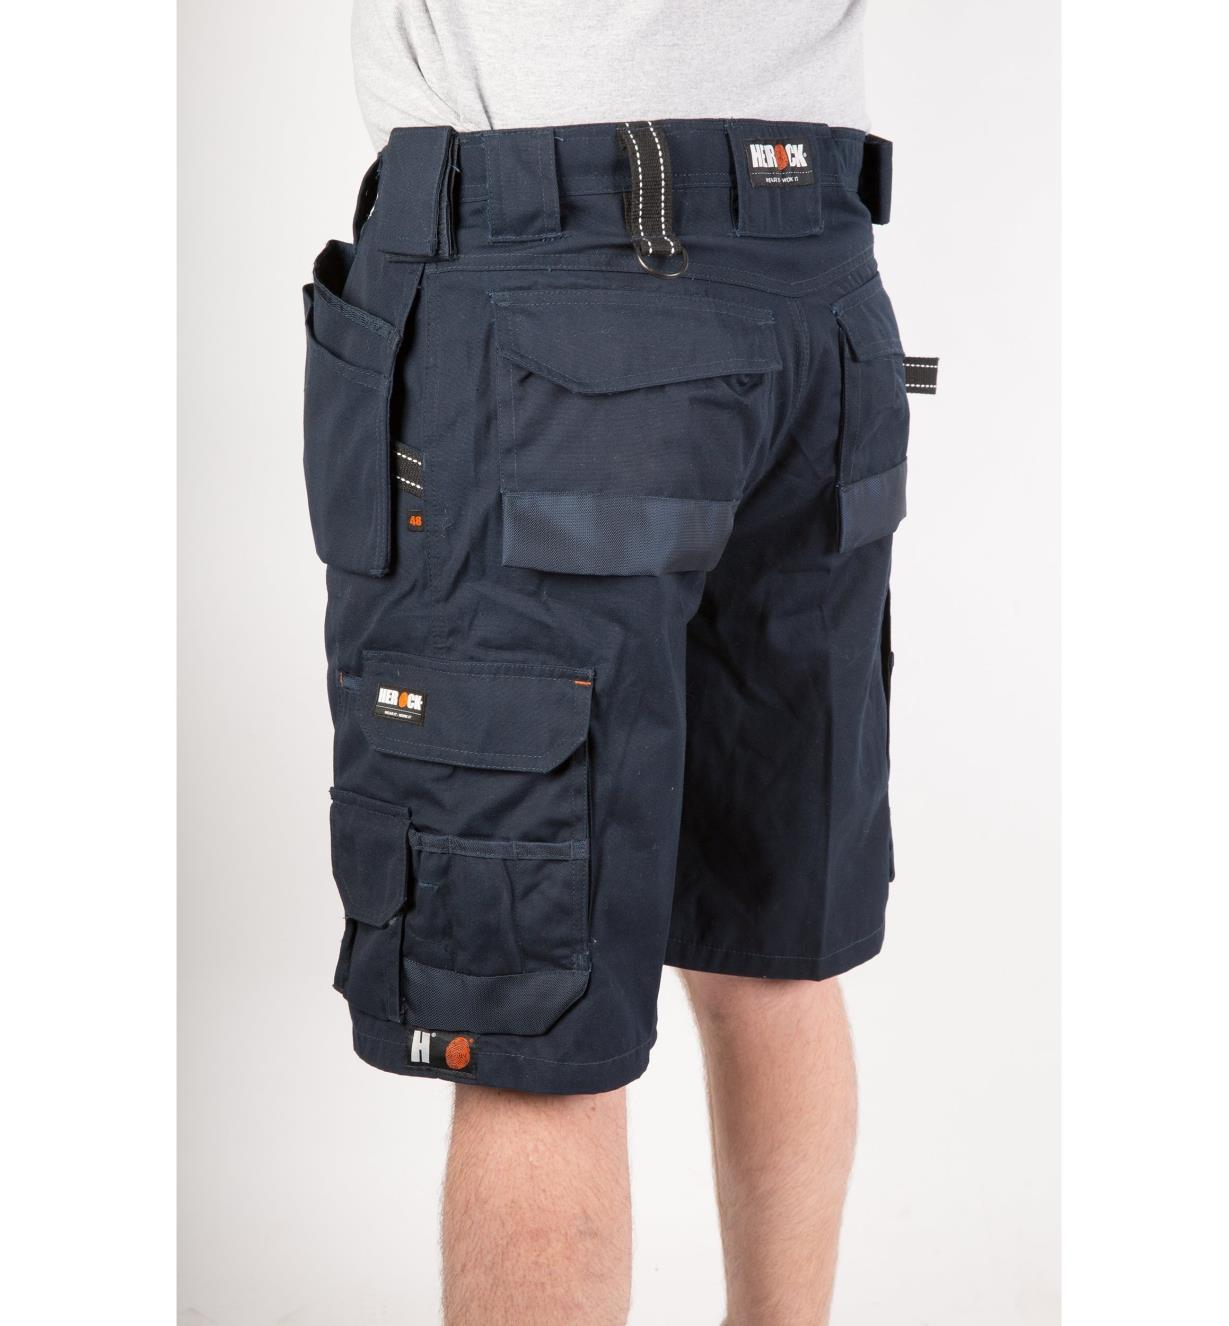 Herock Work Wear – Pallas Shorts